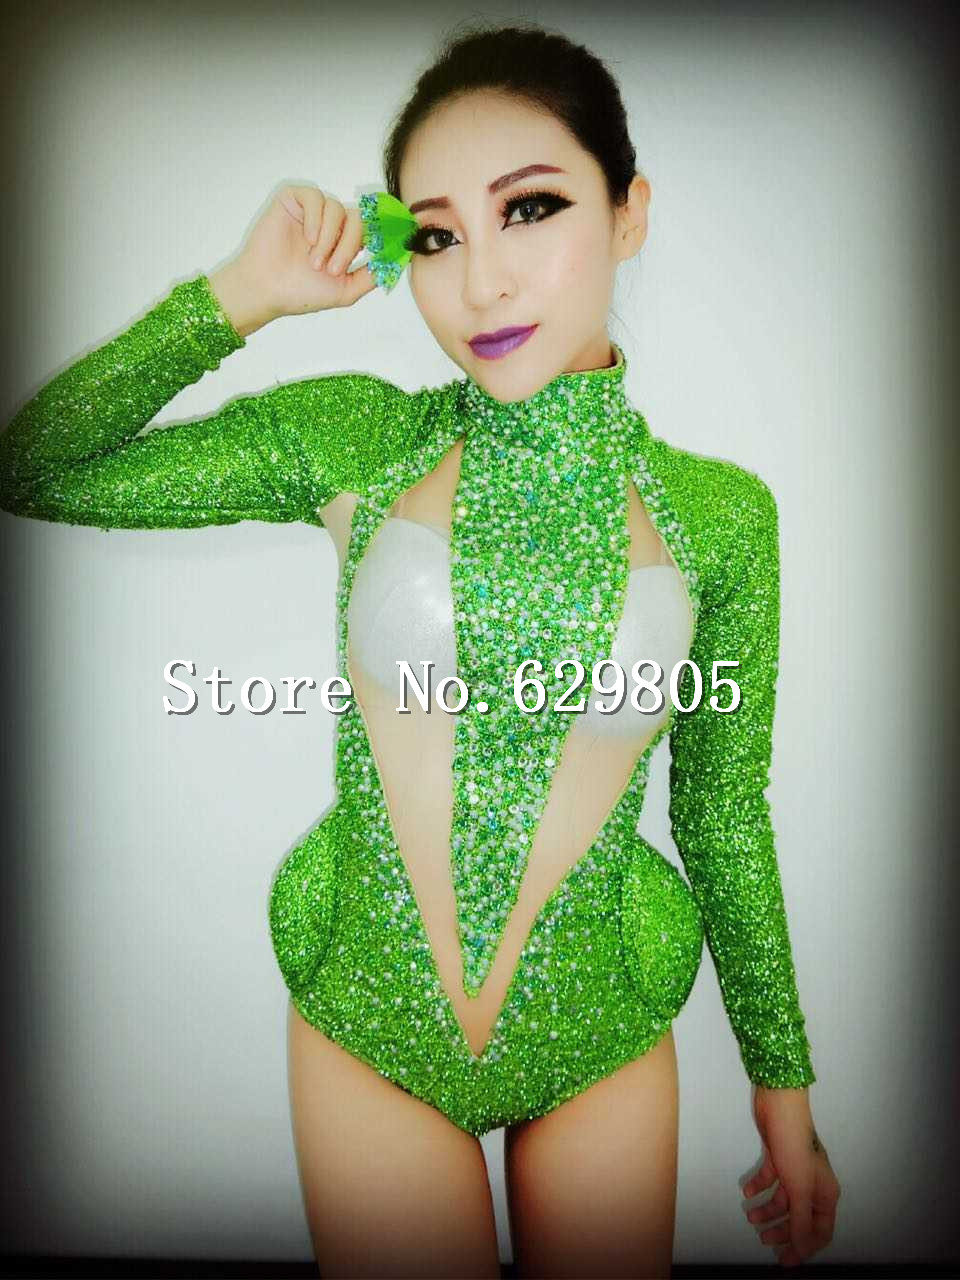 Sexy Shining Green Sequins Long Sleeves Bodysuit Outfit Leotard Female Singer DJ DS Dance Stage Bright Costume Party Dress